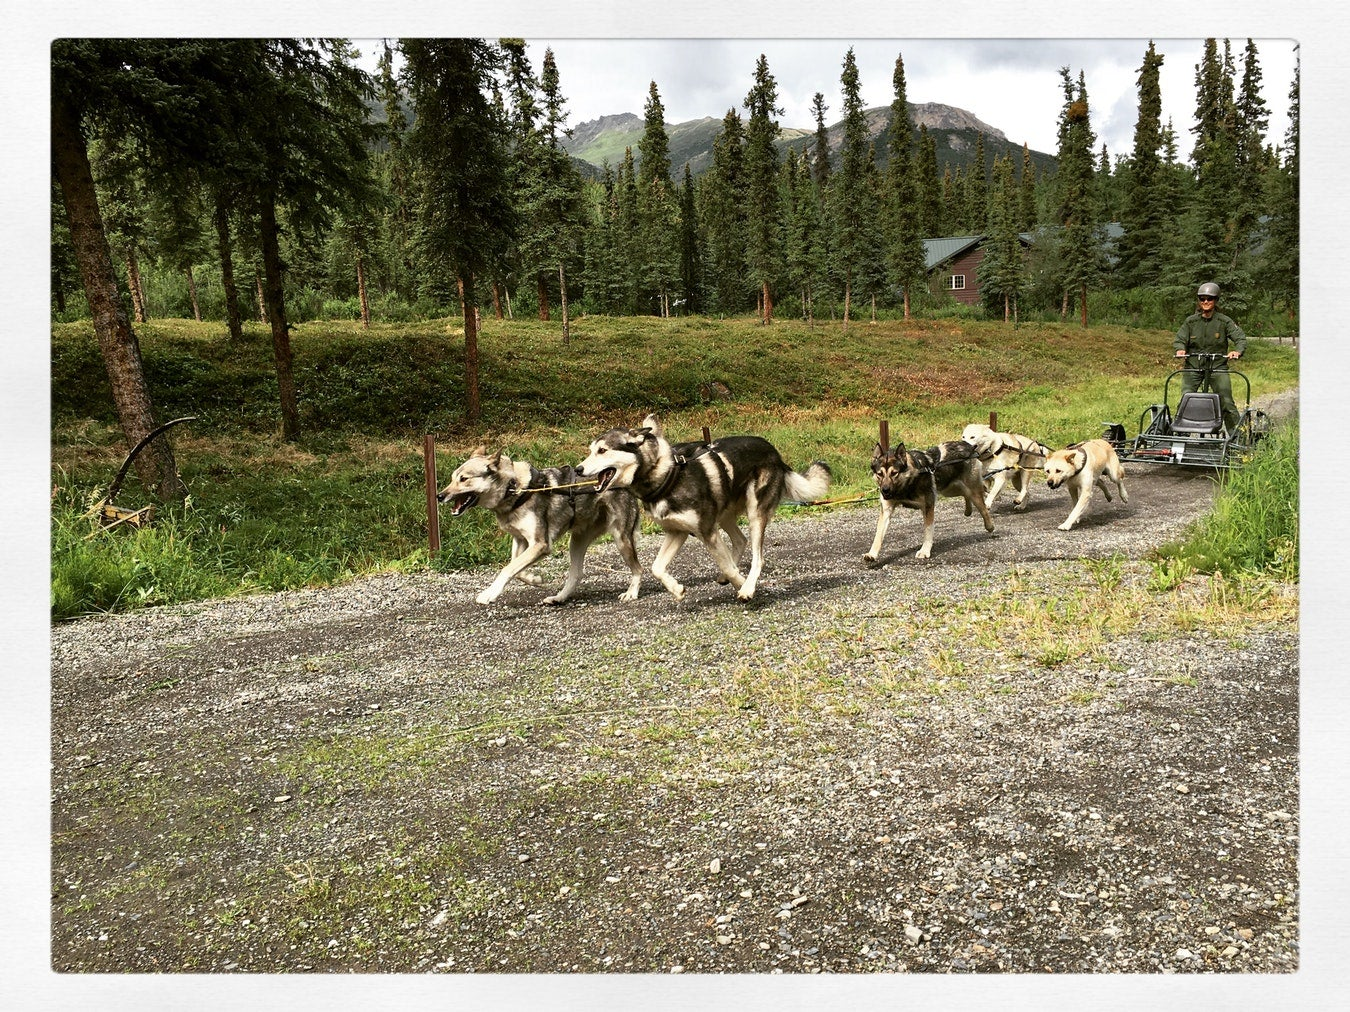 denali sled dog demonstation